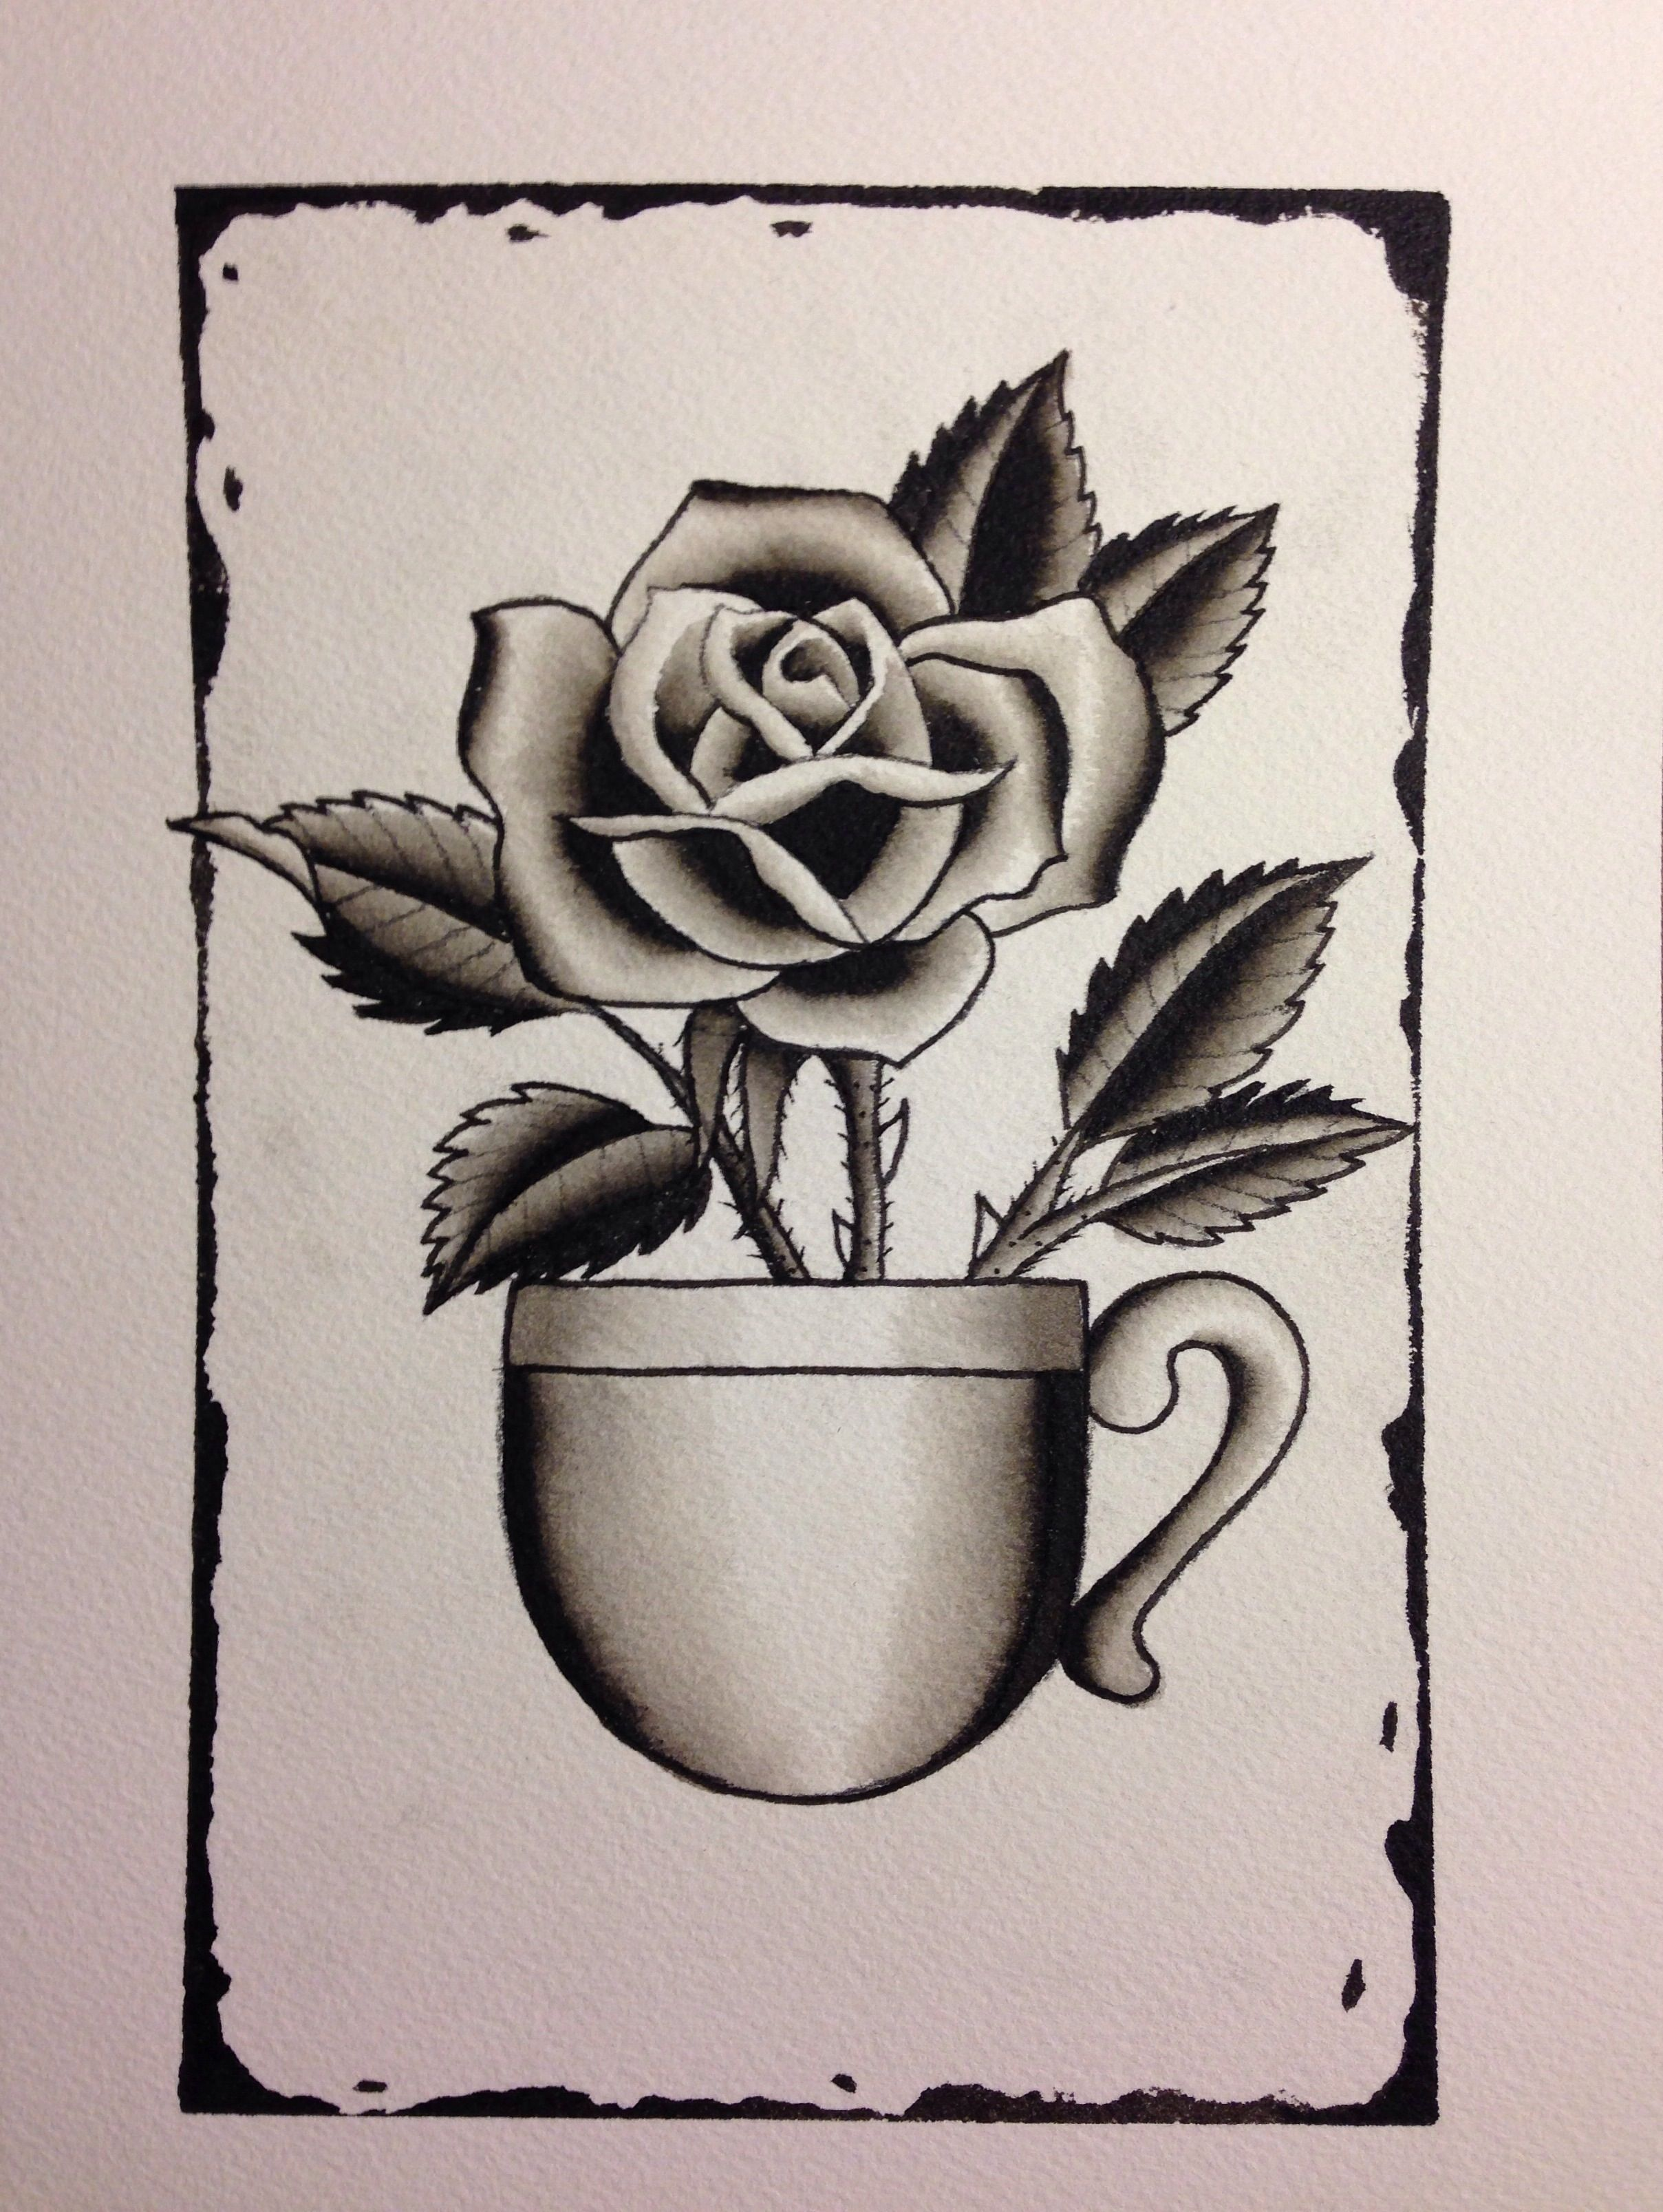 Black rose of coffee By Mike Attack  New York, NY For appointments inquires  Mikeattacktattoo@gmail.com Instagram @mikeattack_tattoo www.facebook.com/tattoosbyattack